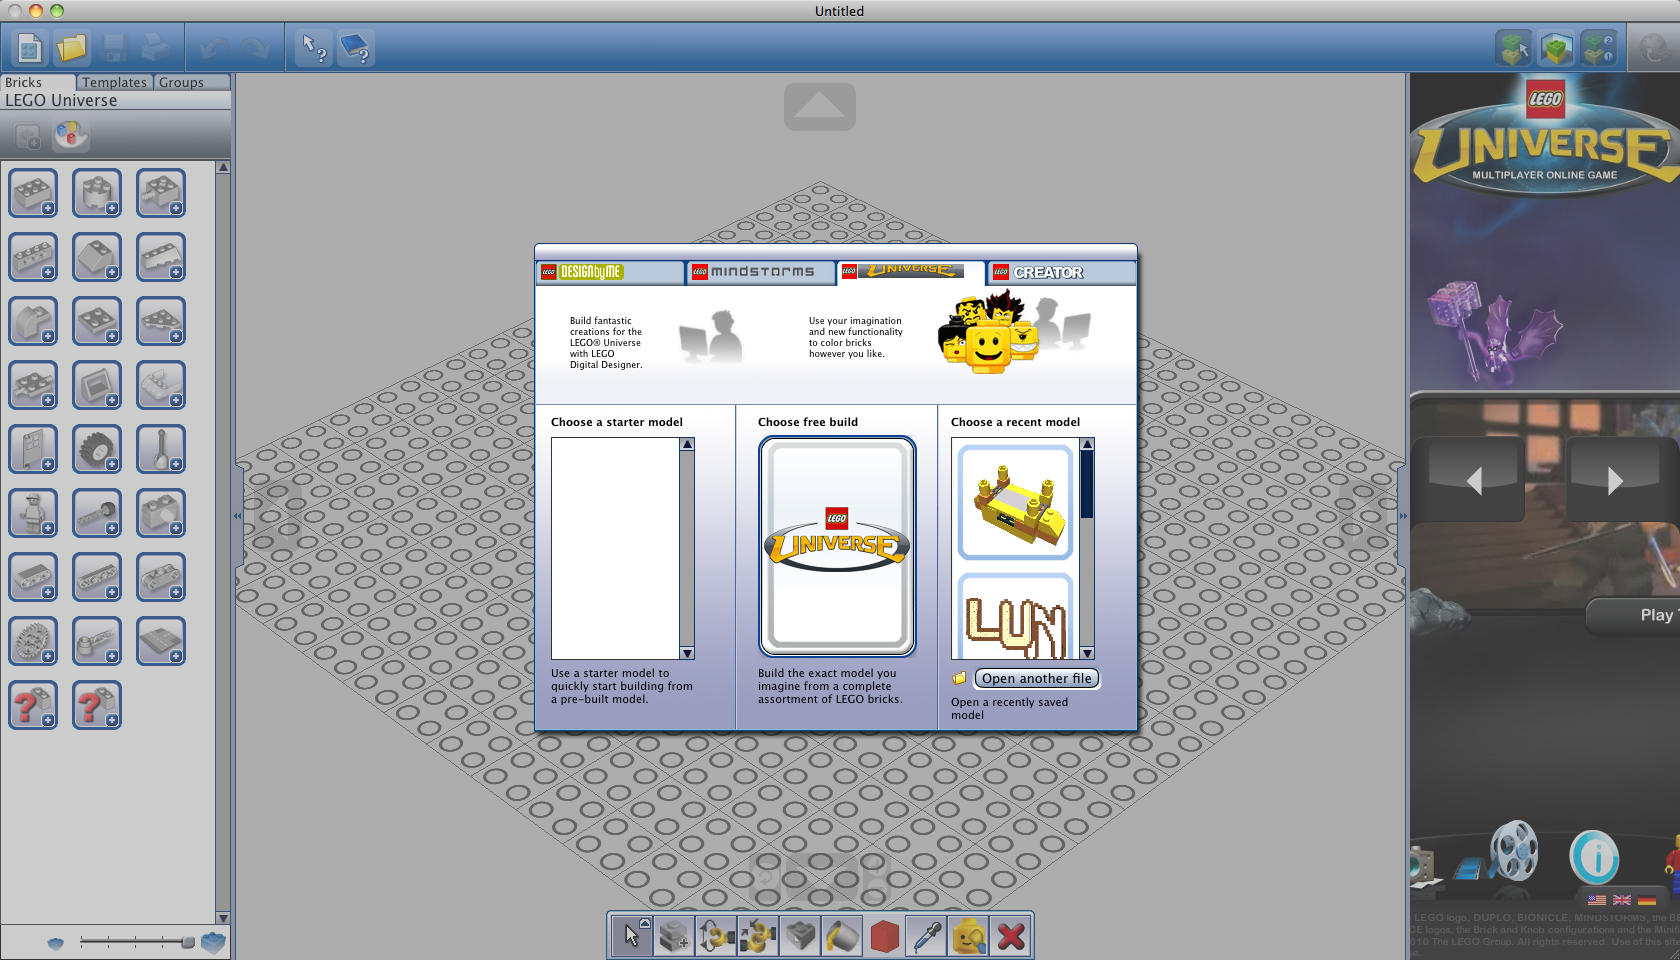 Lego universe hidden mode found in ldd lego universe news for Lego digital designer templates